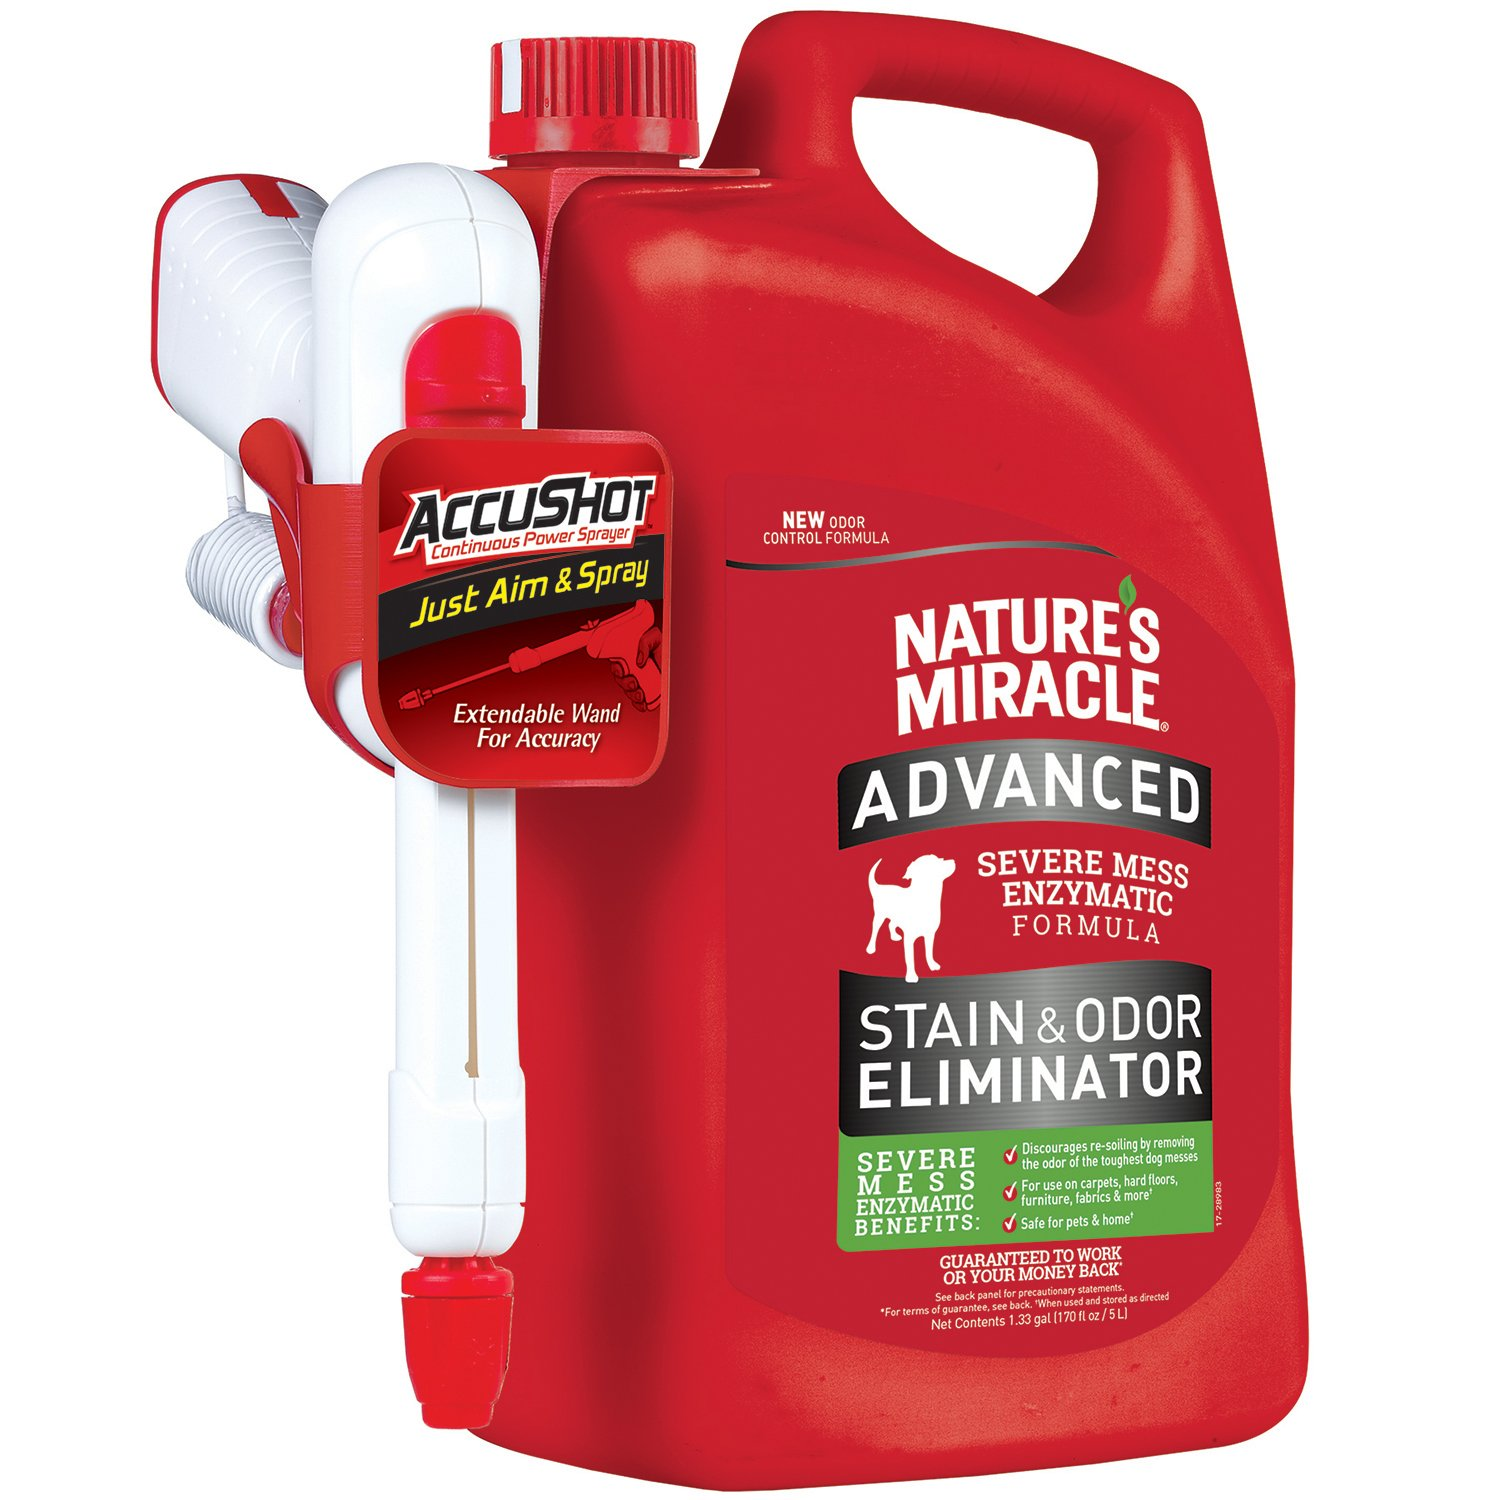 Nature's Miracle Advanced Stain and Odor Eliminator,  170oz by Nature's Miracle